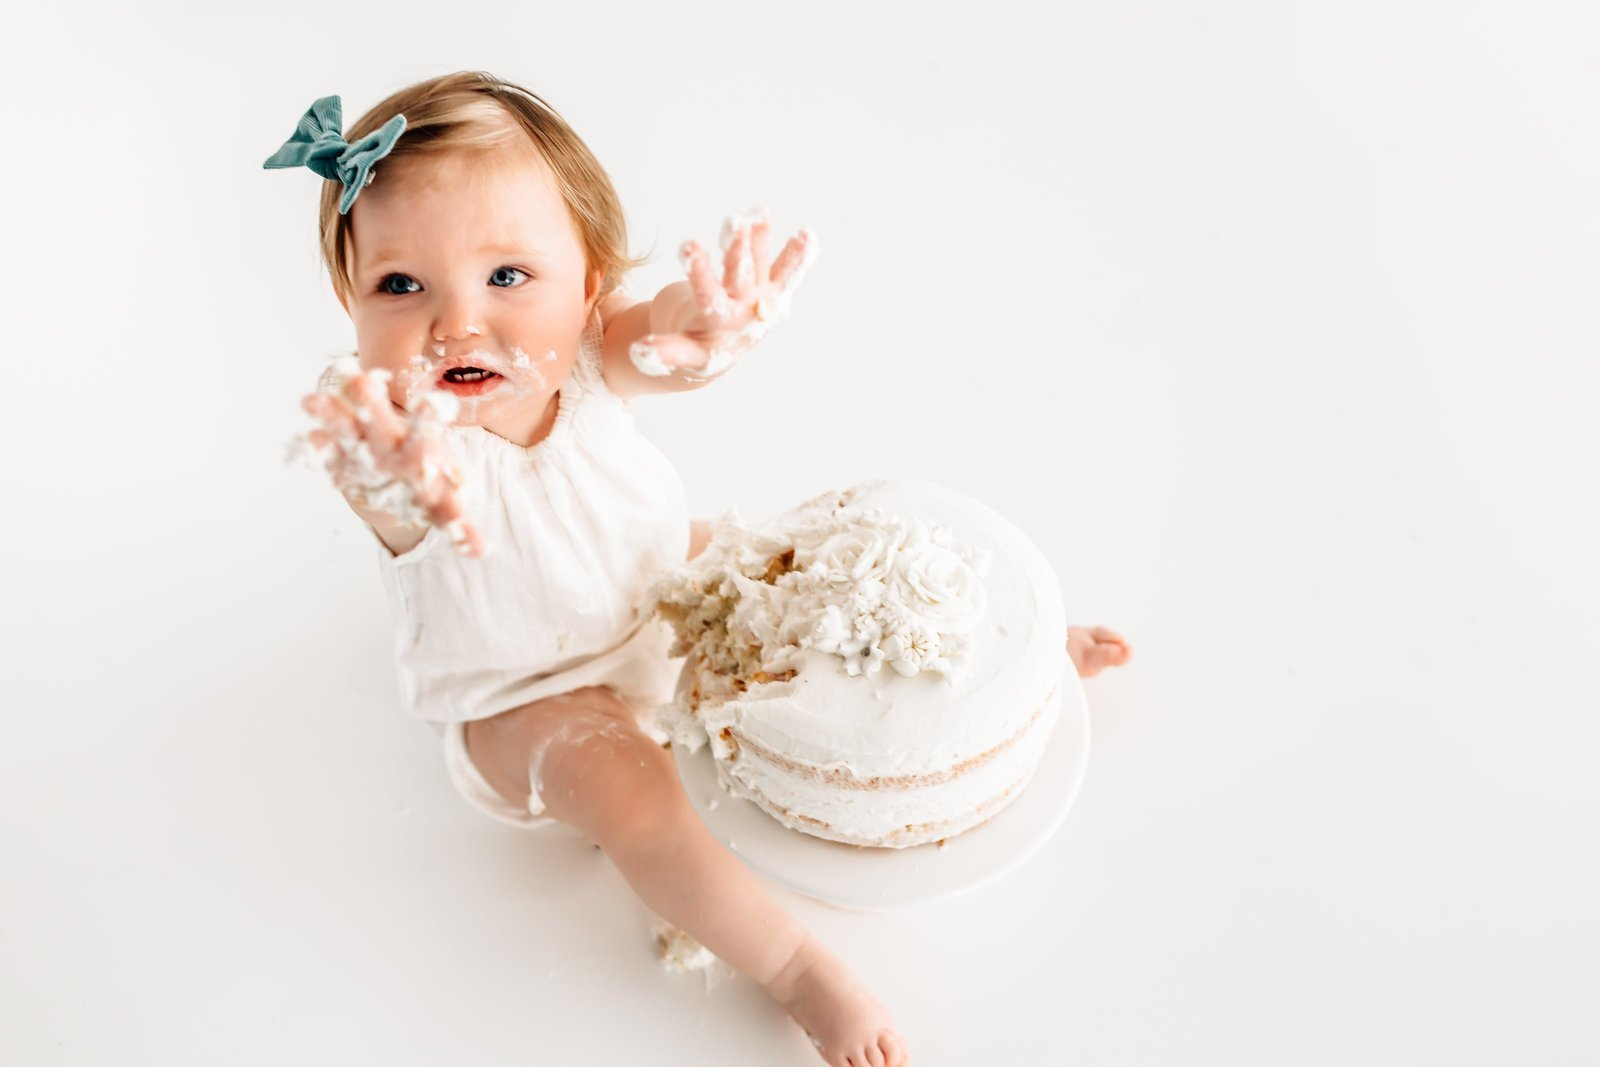 St_Louis_Baby_Photographer_Kelly_Laramore_Photography_119